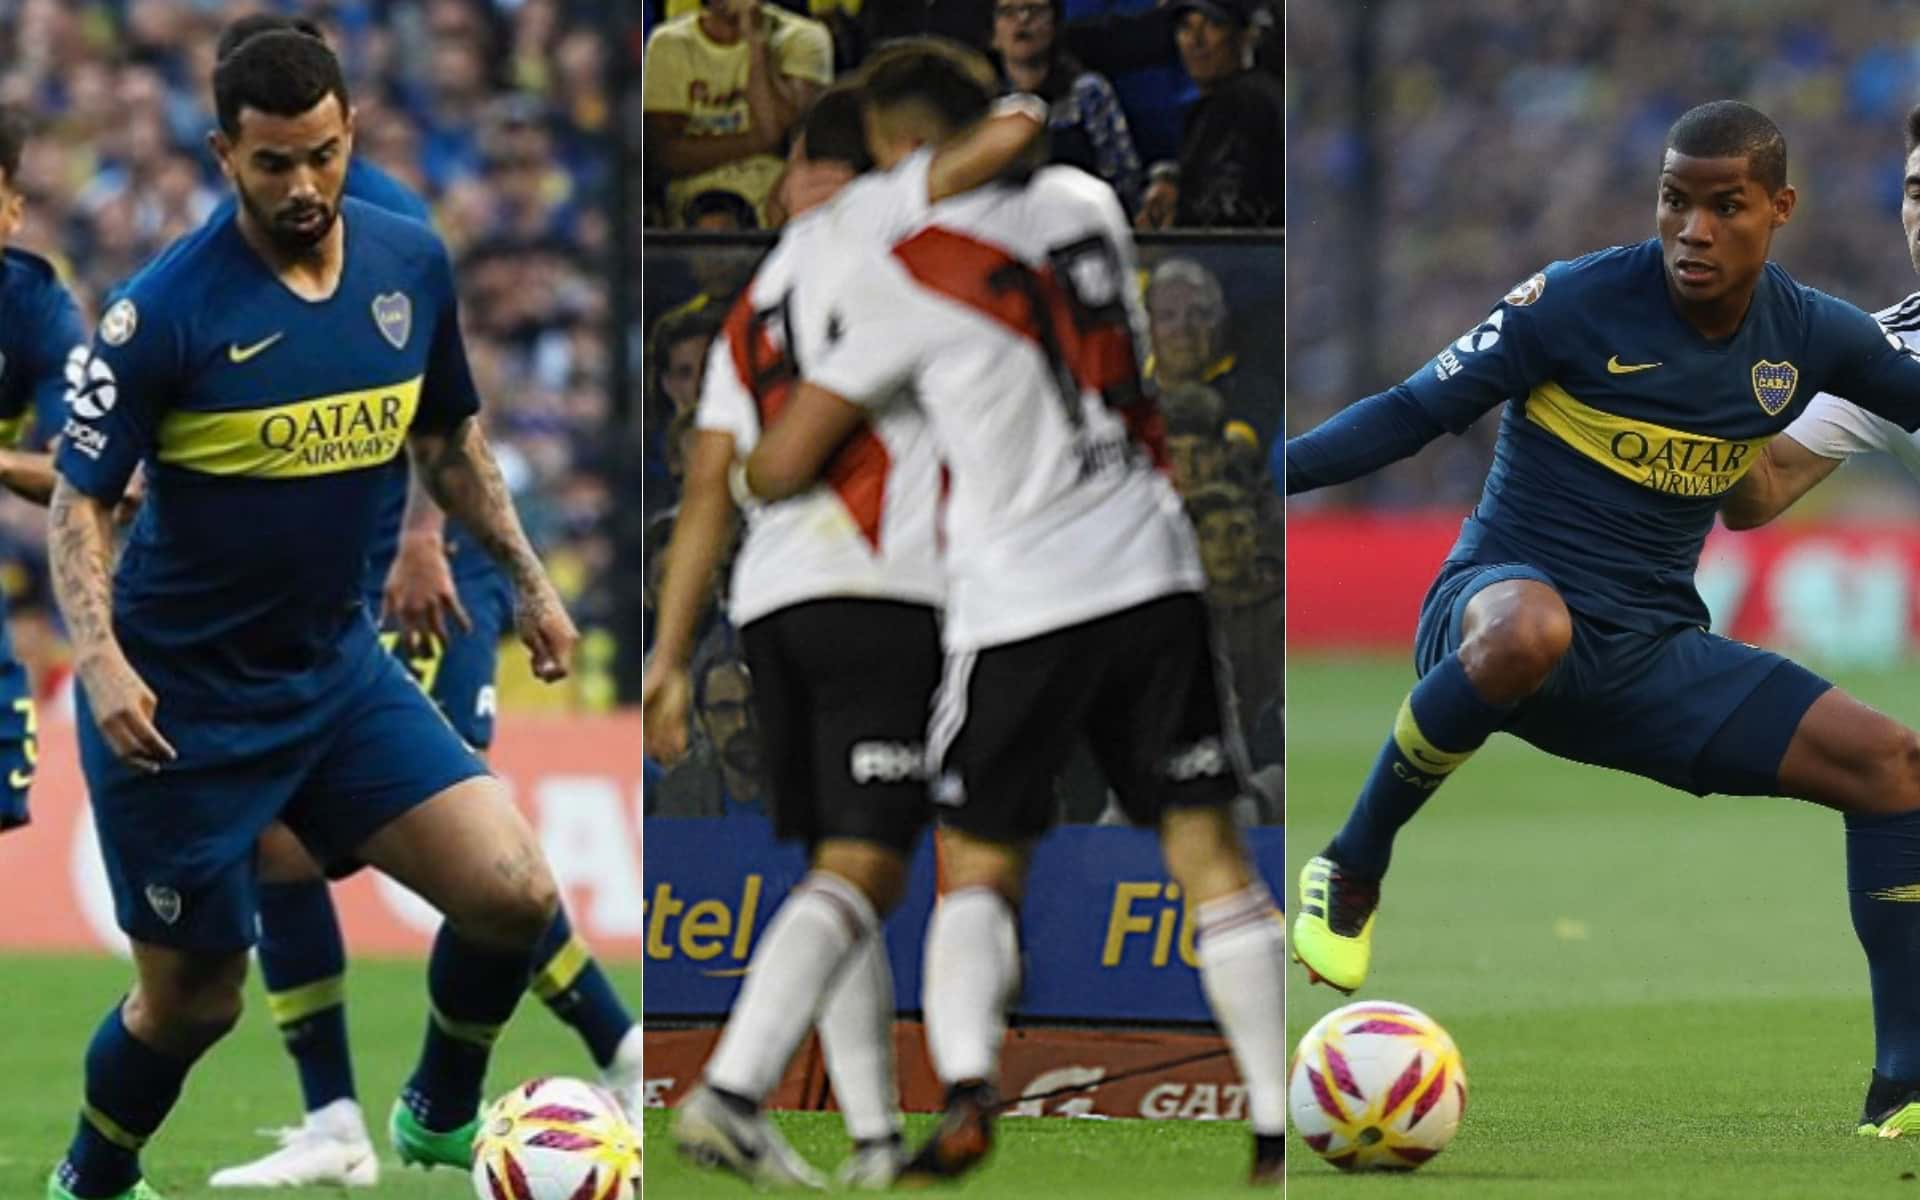 Video: Jugadores colombianos en Boca Juniros VS River Plate de Fecha 6 de Superliga Argentina 2018/19